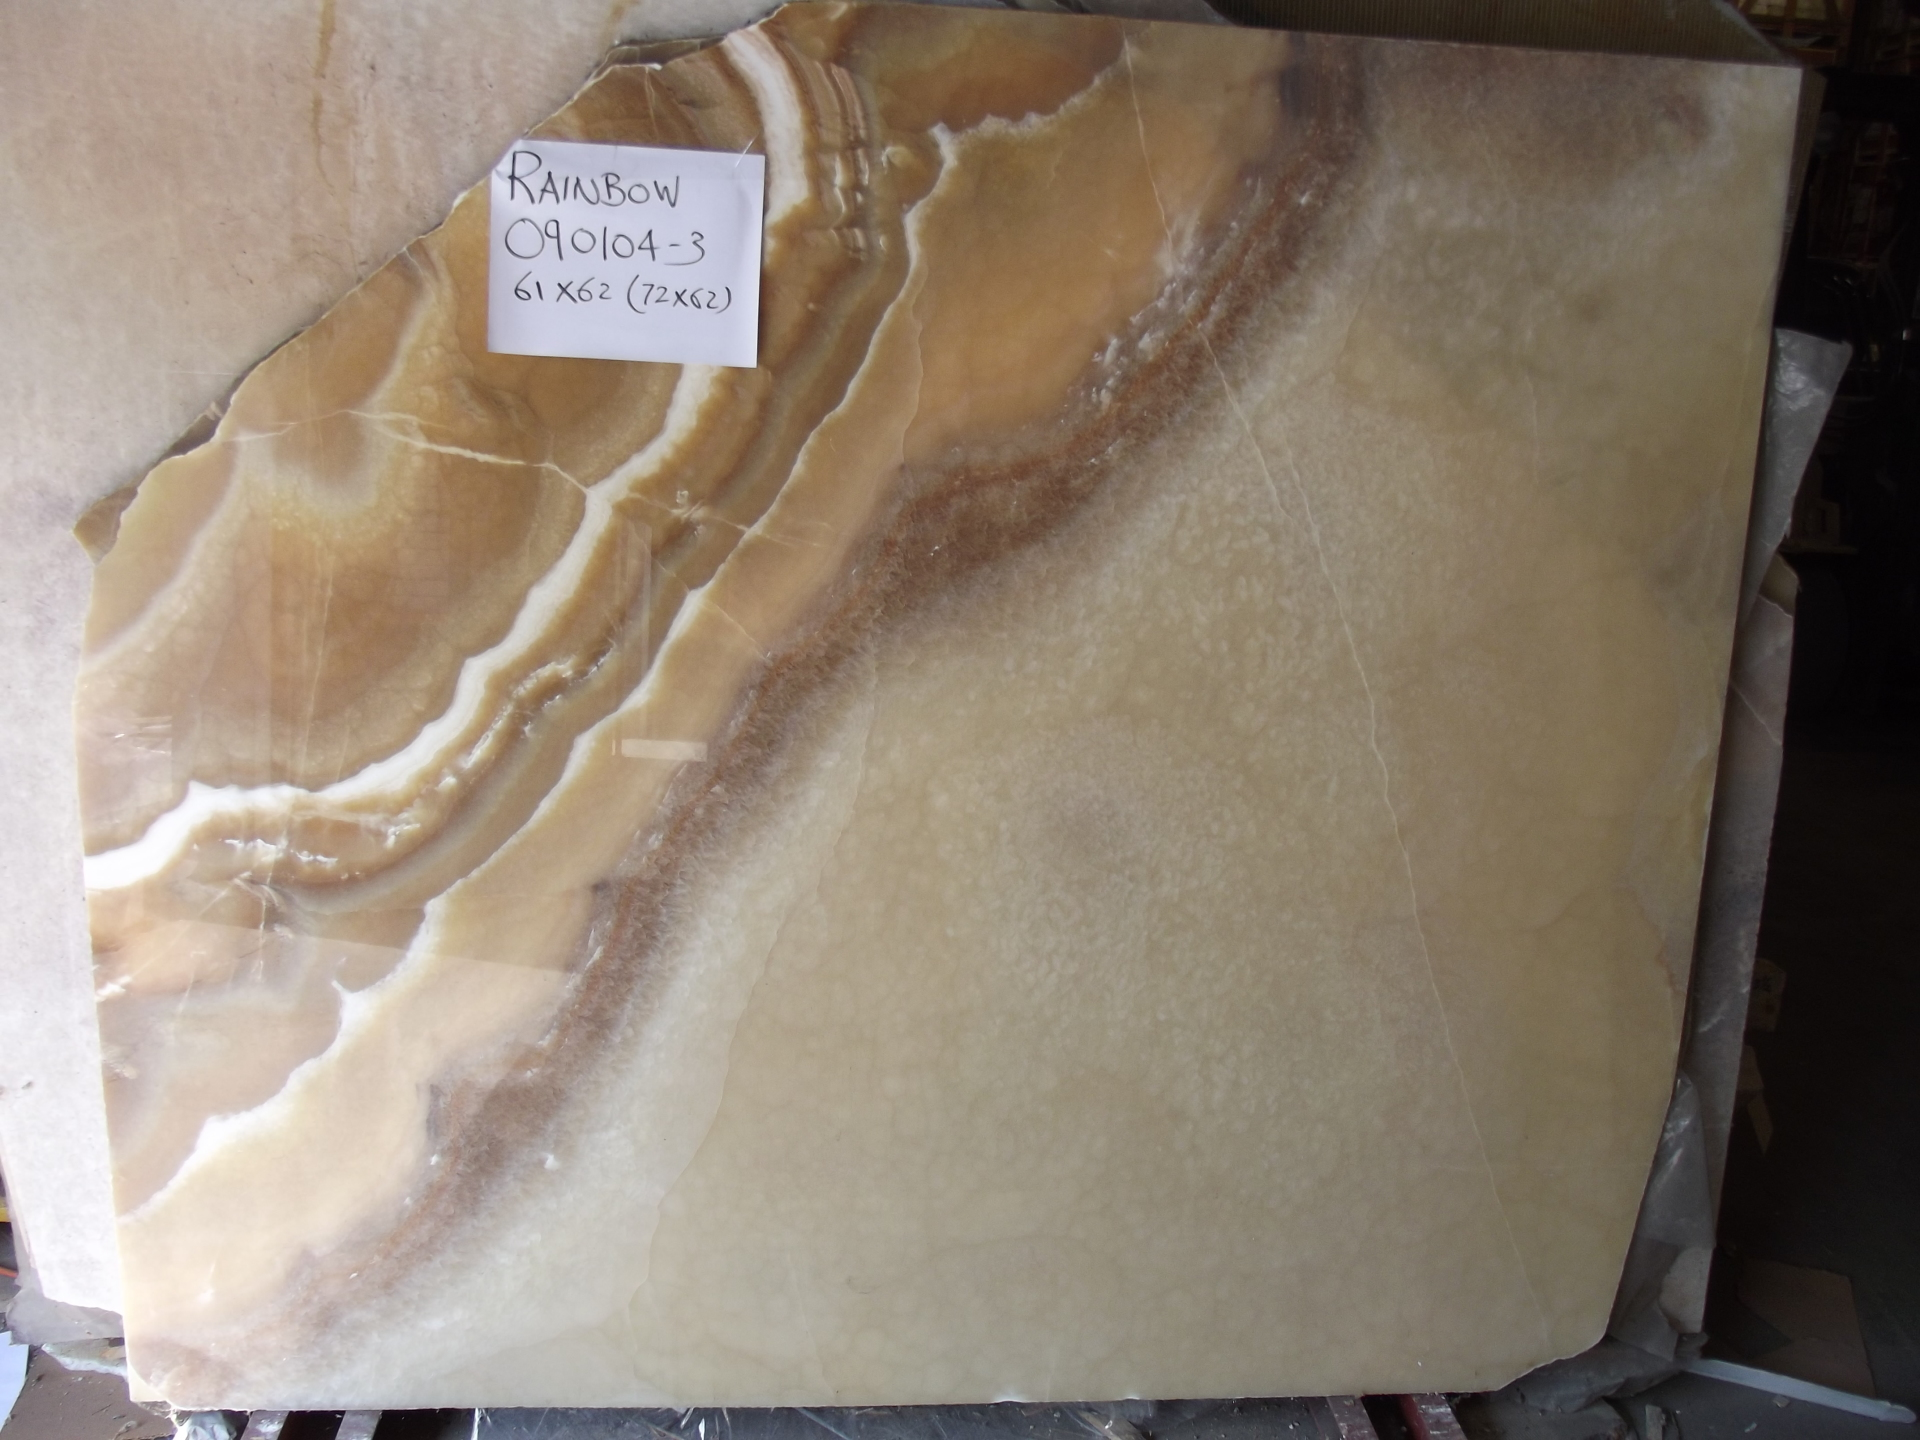 "Rainbow 3/4"" Polished Onyx Slabs, Lot# 090104 (Other Slabs Available, Inquire)"